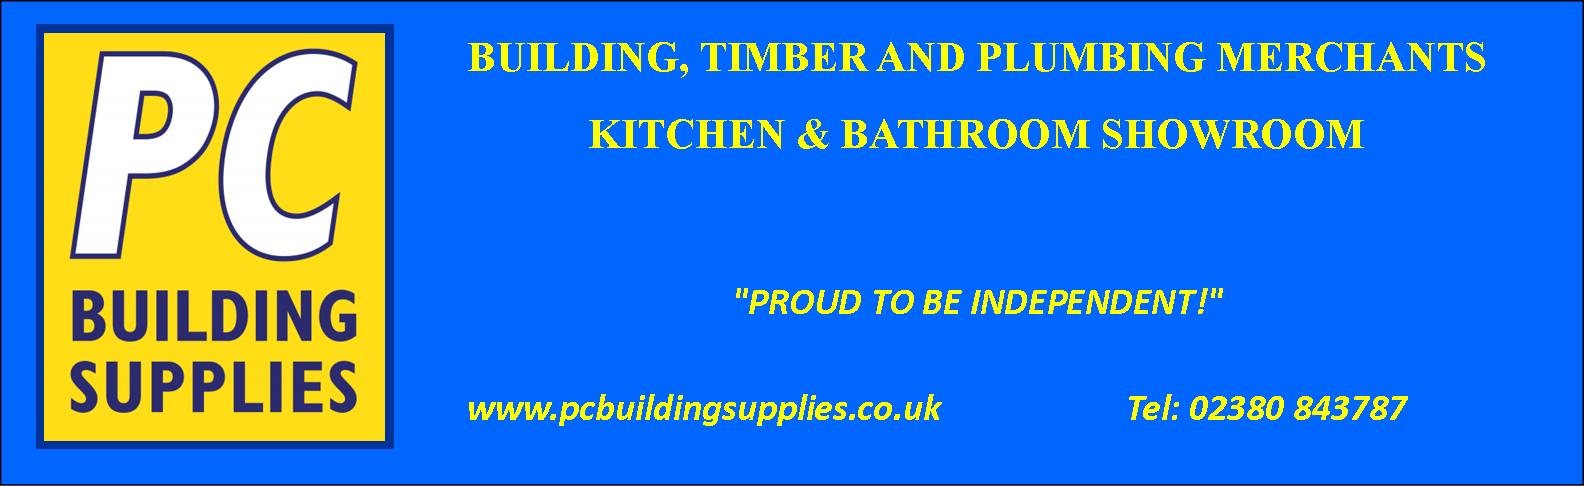 Away Kit - P.C. Building Supplies - 02380 843787 - www.pcbuildingsupplies.co.uk